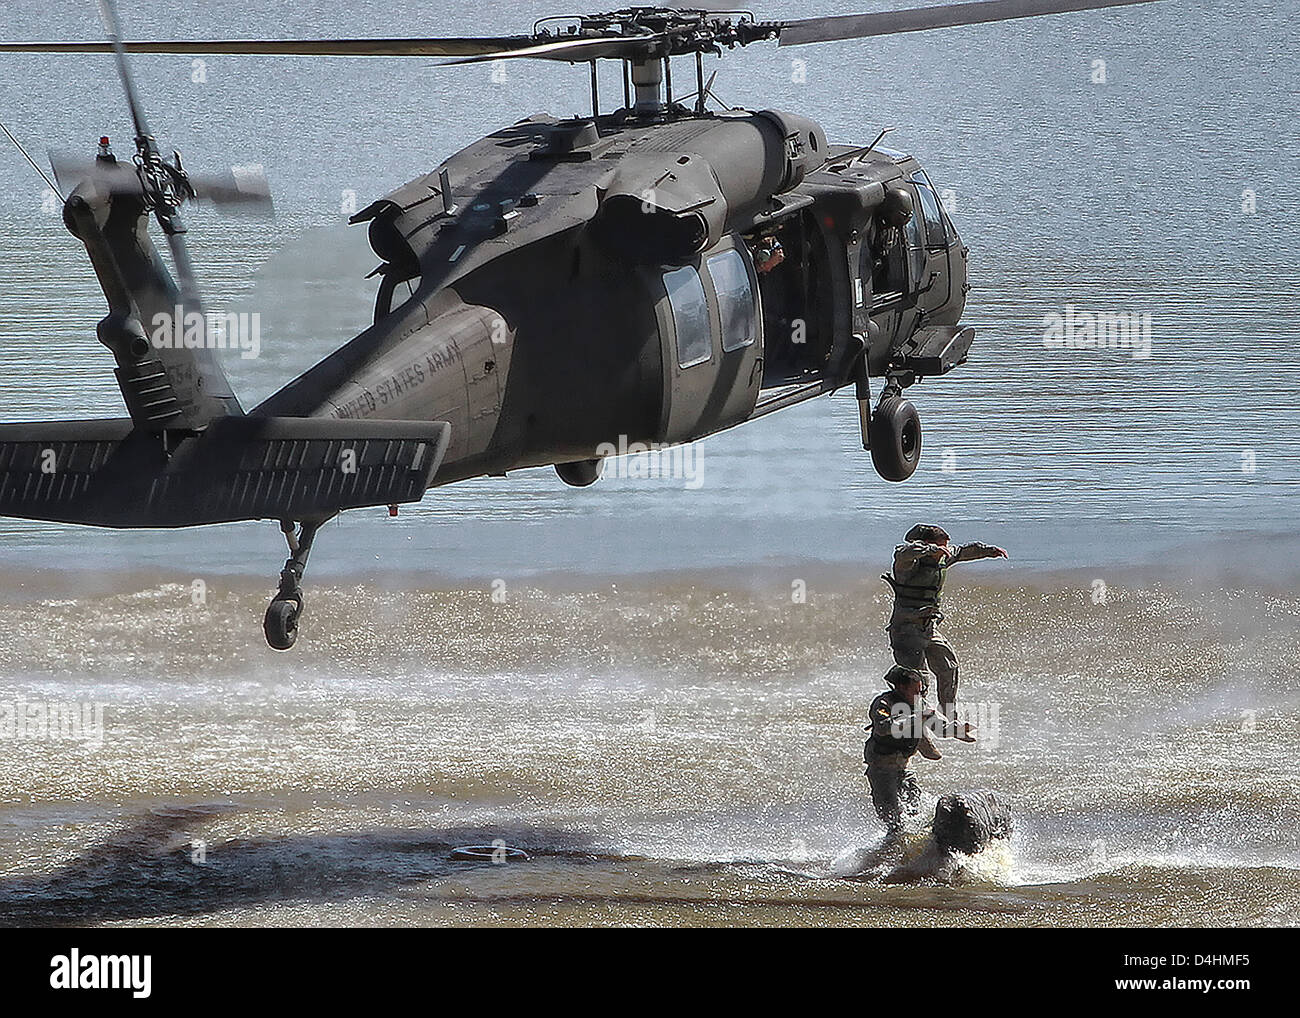 US Army Rangers leap into the water from a Black Hawk helicopter during training April 16, 2011 in Fort Benning, - Stock Image